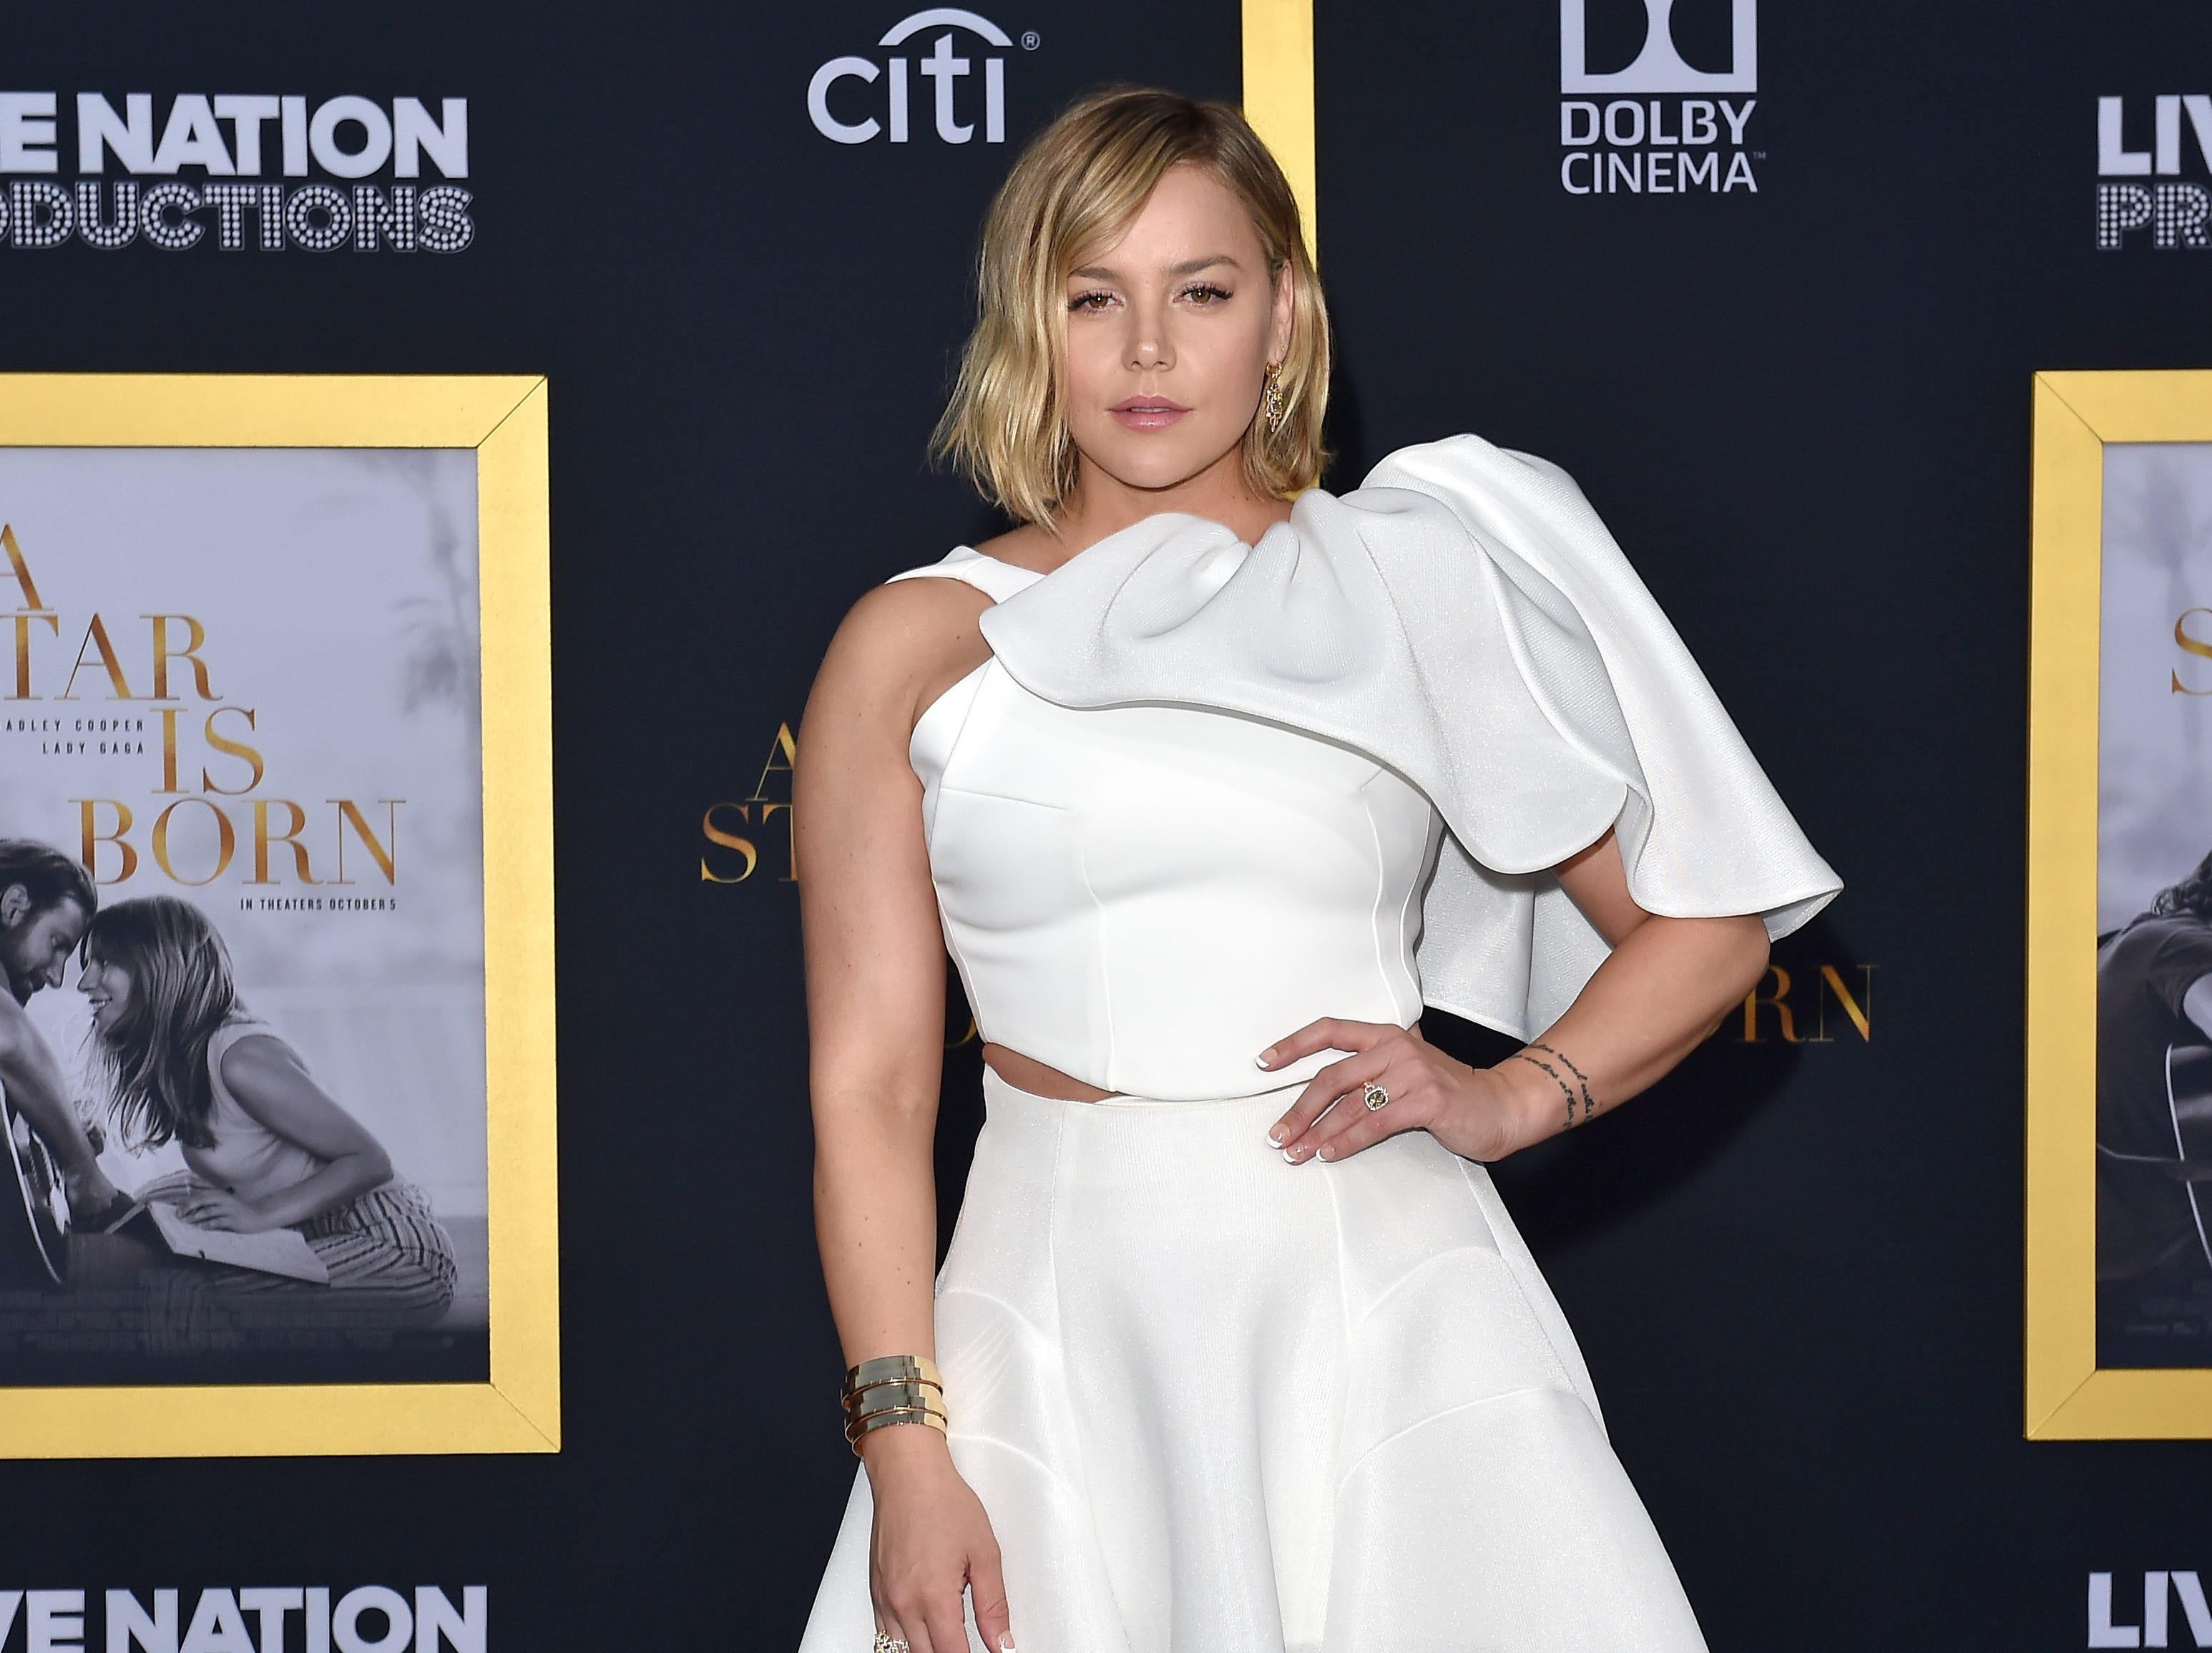 LOS ANGELES, CA - SEPTEMBER 24:  Abbie Cornish attends the premiere of Warner Bros. Pictures' 'A Star Is Born' at The Shrine Auditorium on September 24, 2018 in Los Angeles, California.  (Photo by Axelle/Bauer-Griffin/FilmMagic) ORG XMIT: 775229470 ORIG FILE ID: 1039800600